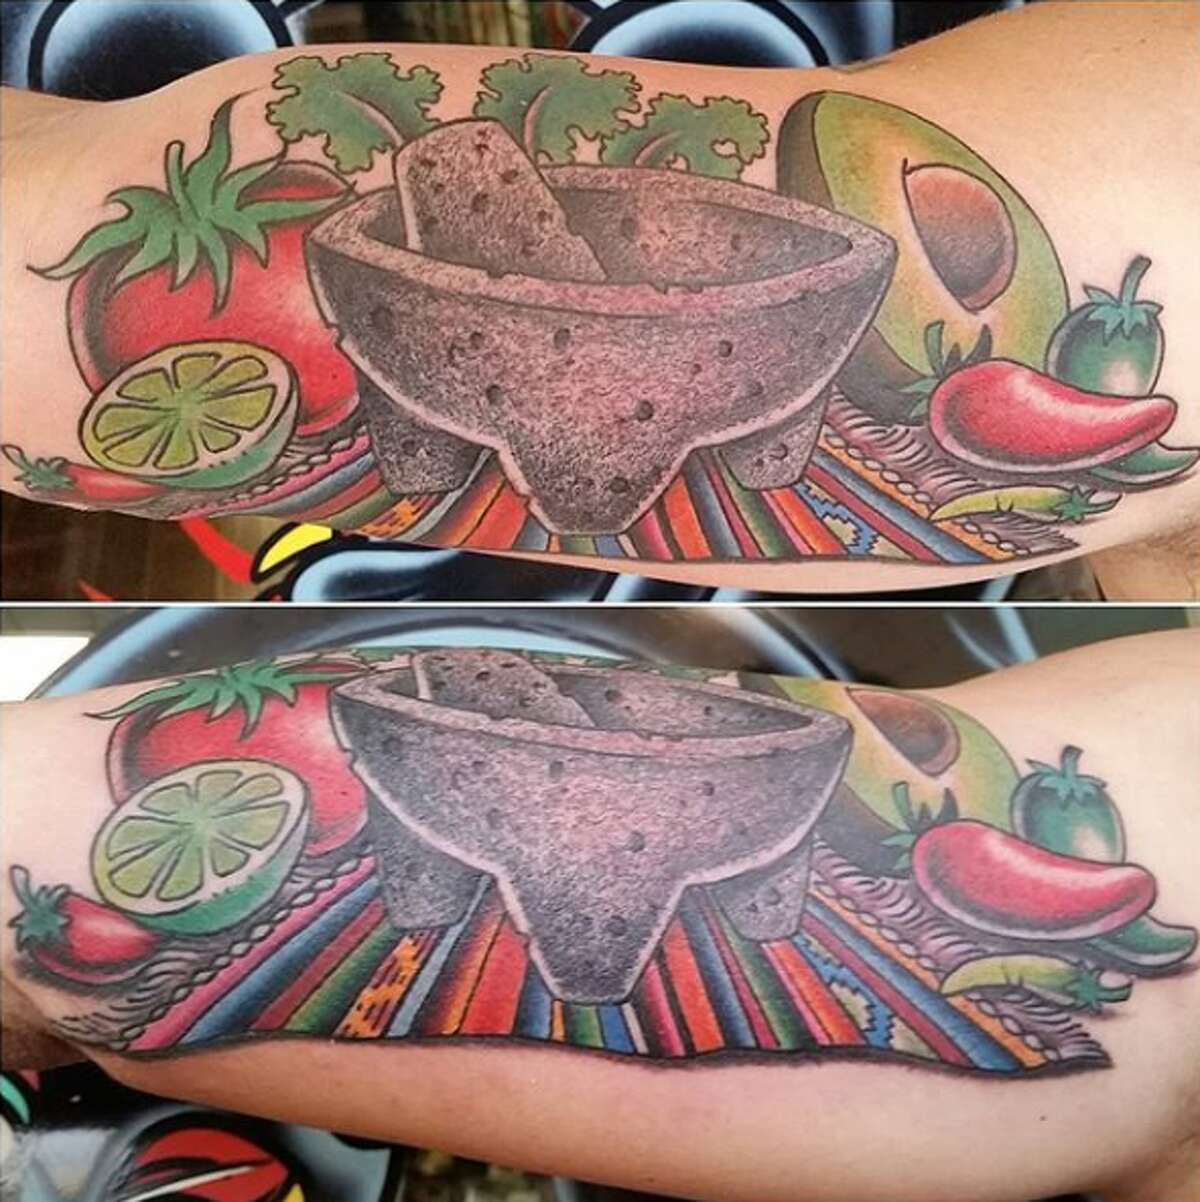 Kelly Edwards, owner of Eternal Courage Tattoo, shared photos of a memorial piece he completed for a client that includes a molcajete sitting in the center of a serape, surrounded by typical ingredients for guacamole.